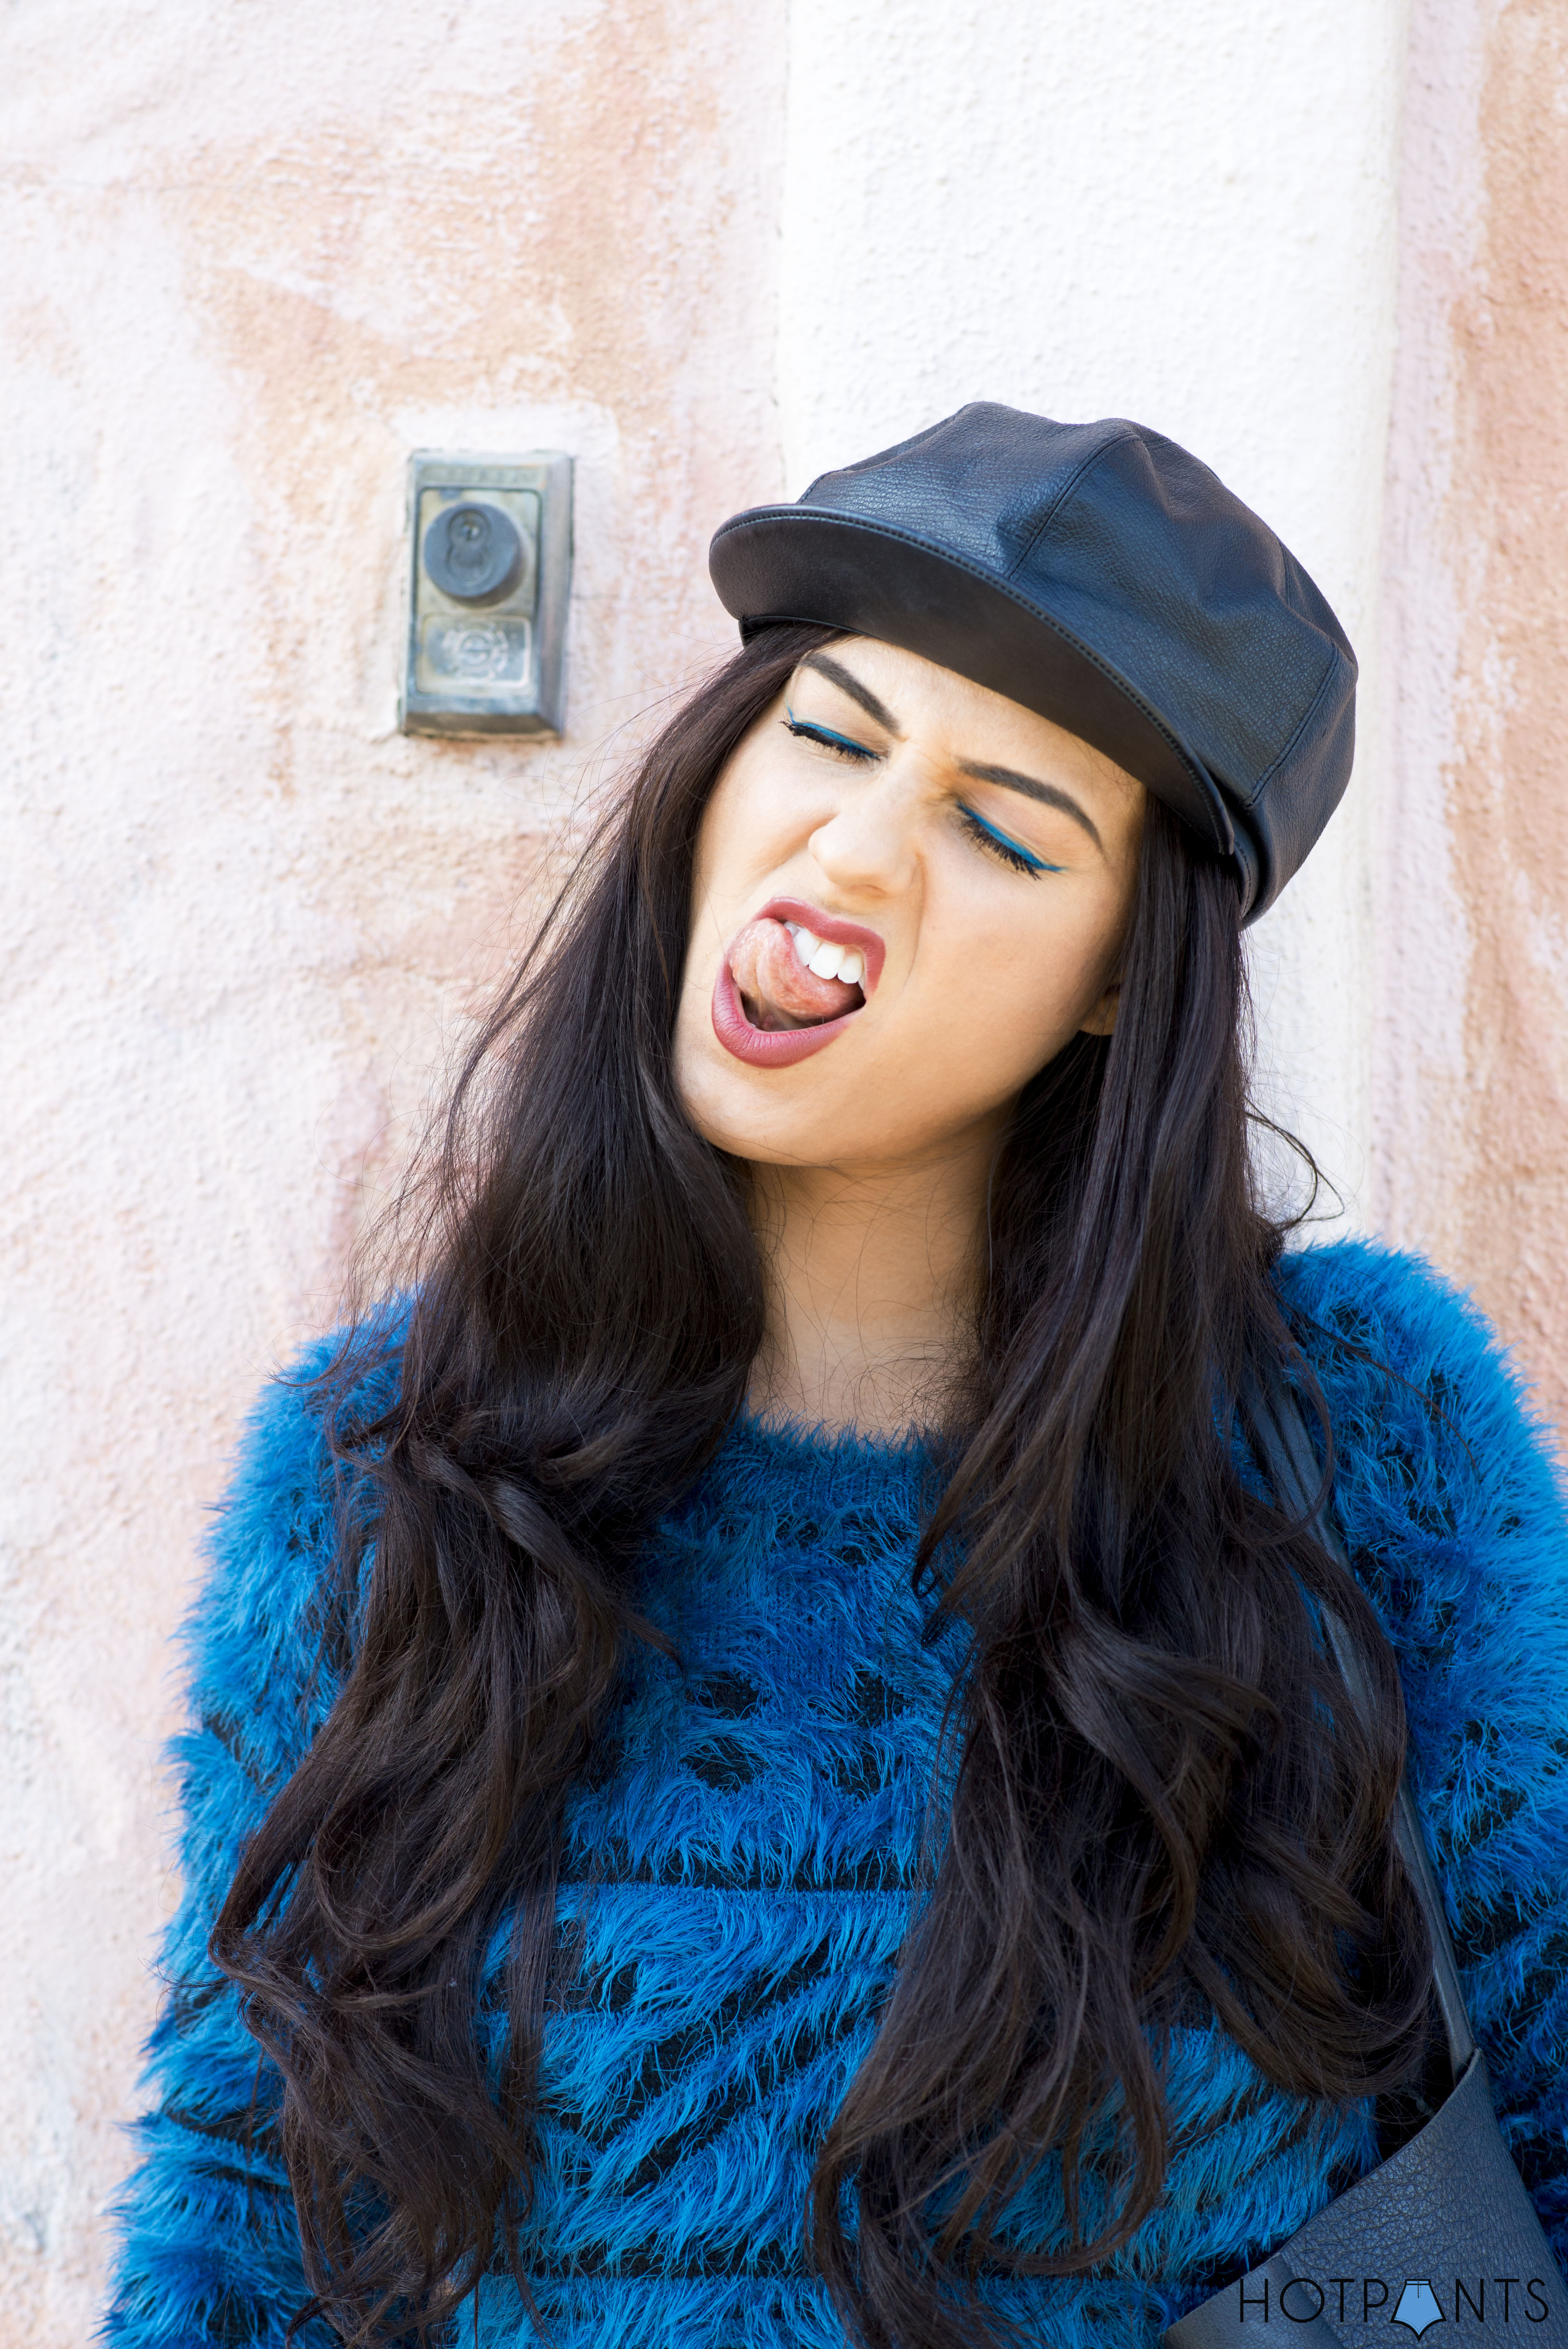 Do The Hotpants Dana Suchow Leather Hat Blue Furry Sweater Cookie Monster Muppet Costume 17